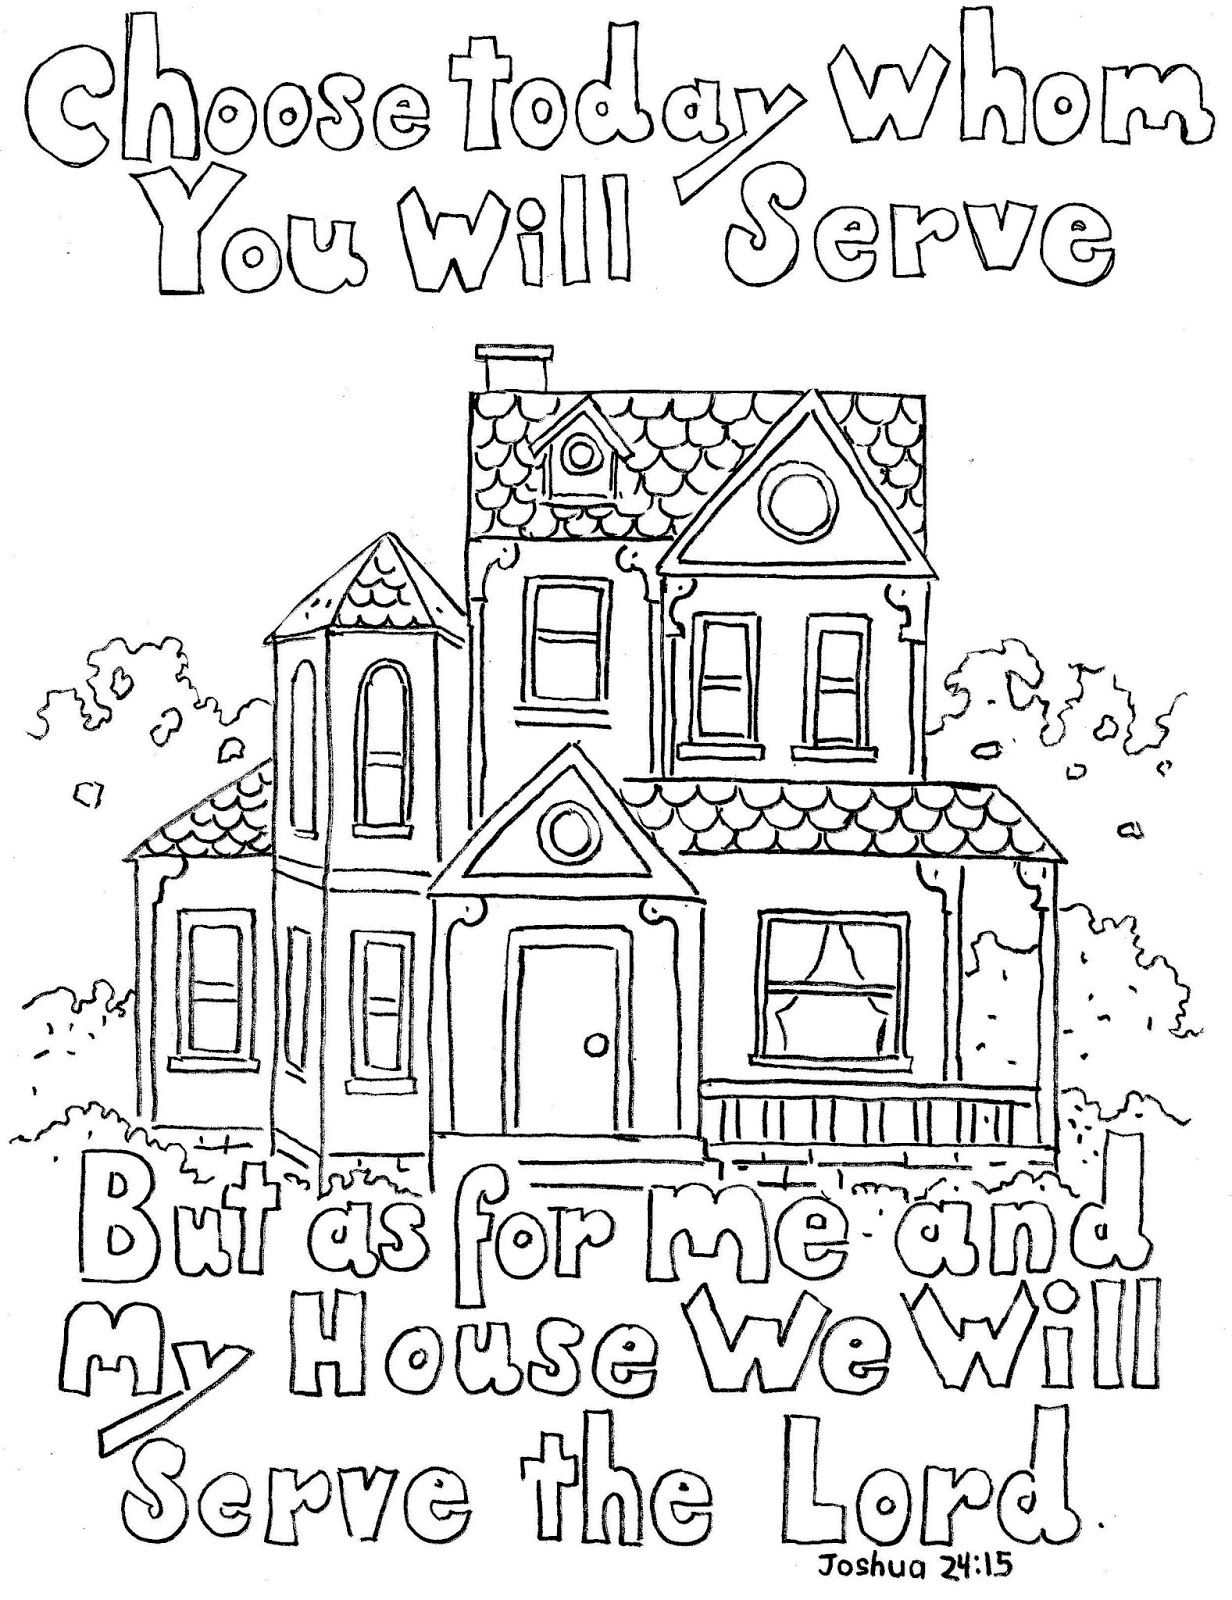 Coloring pages with bible verses - Obey The Lord Coloring Page Joshua 24 15 Print And Color Page